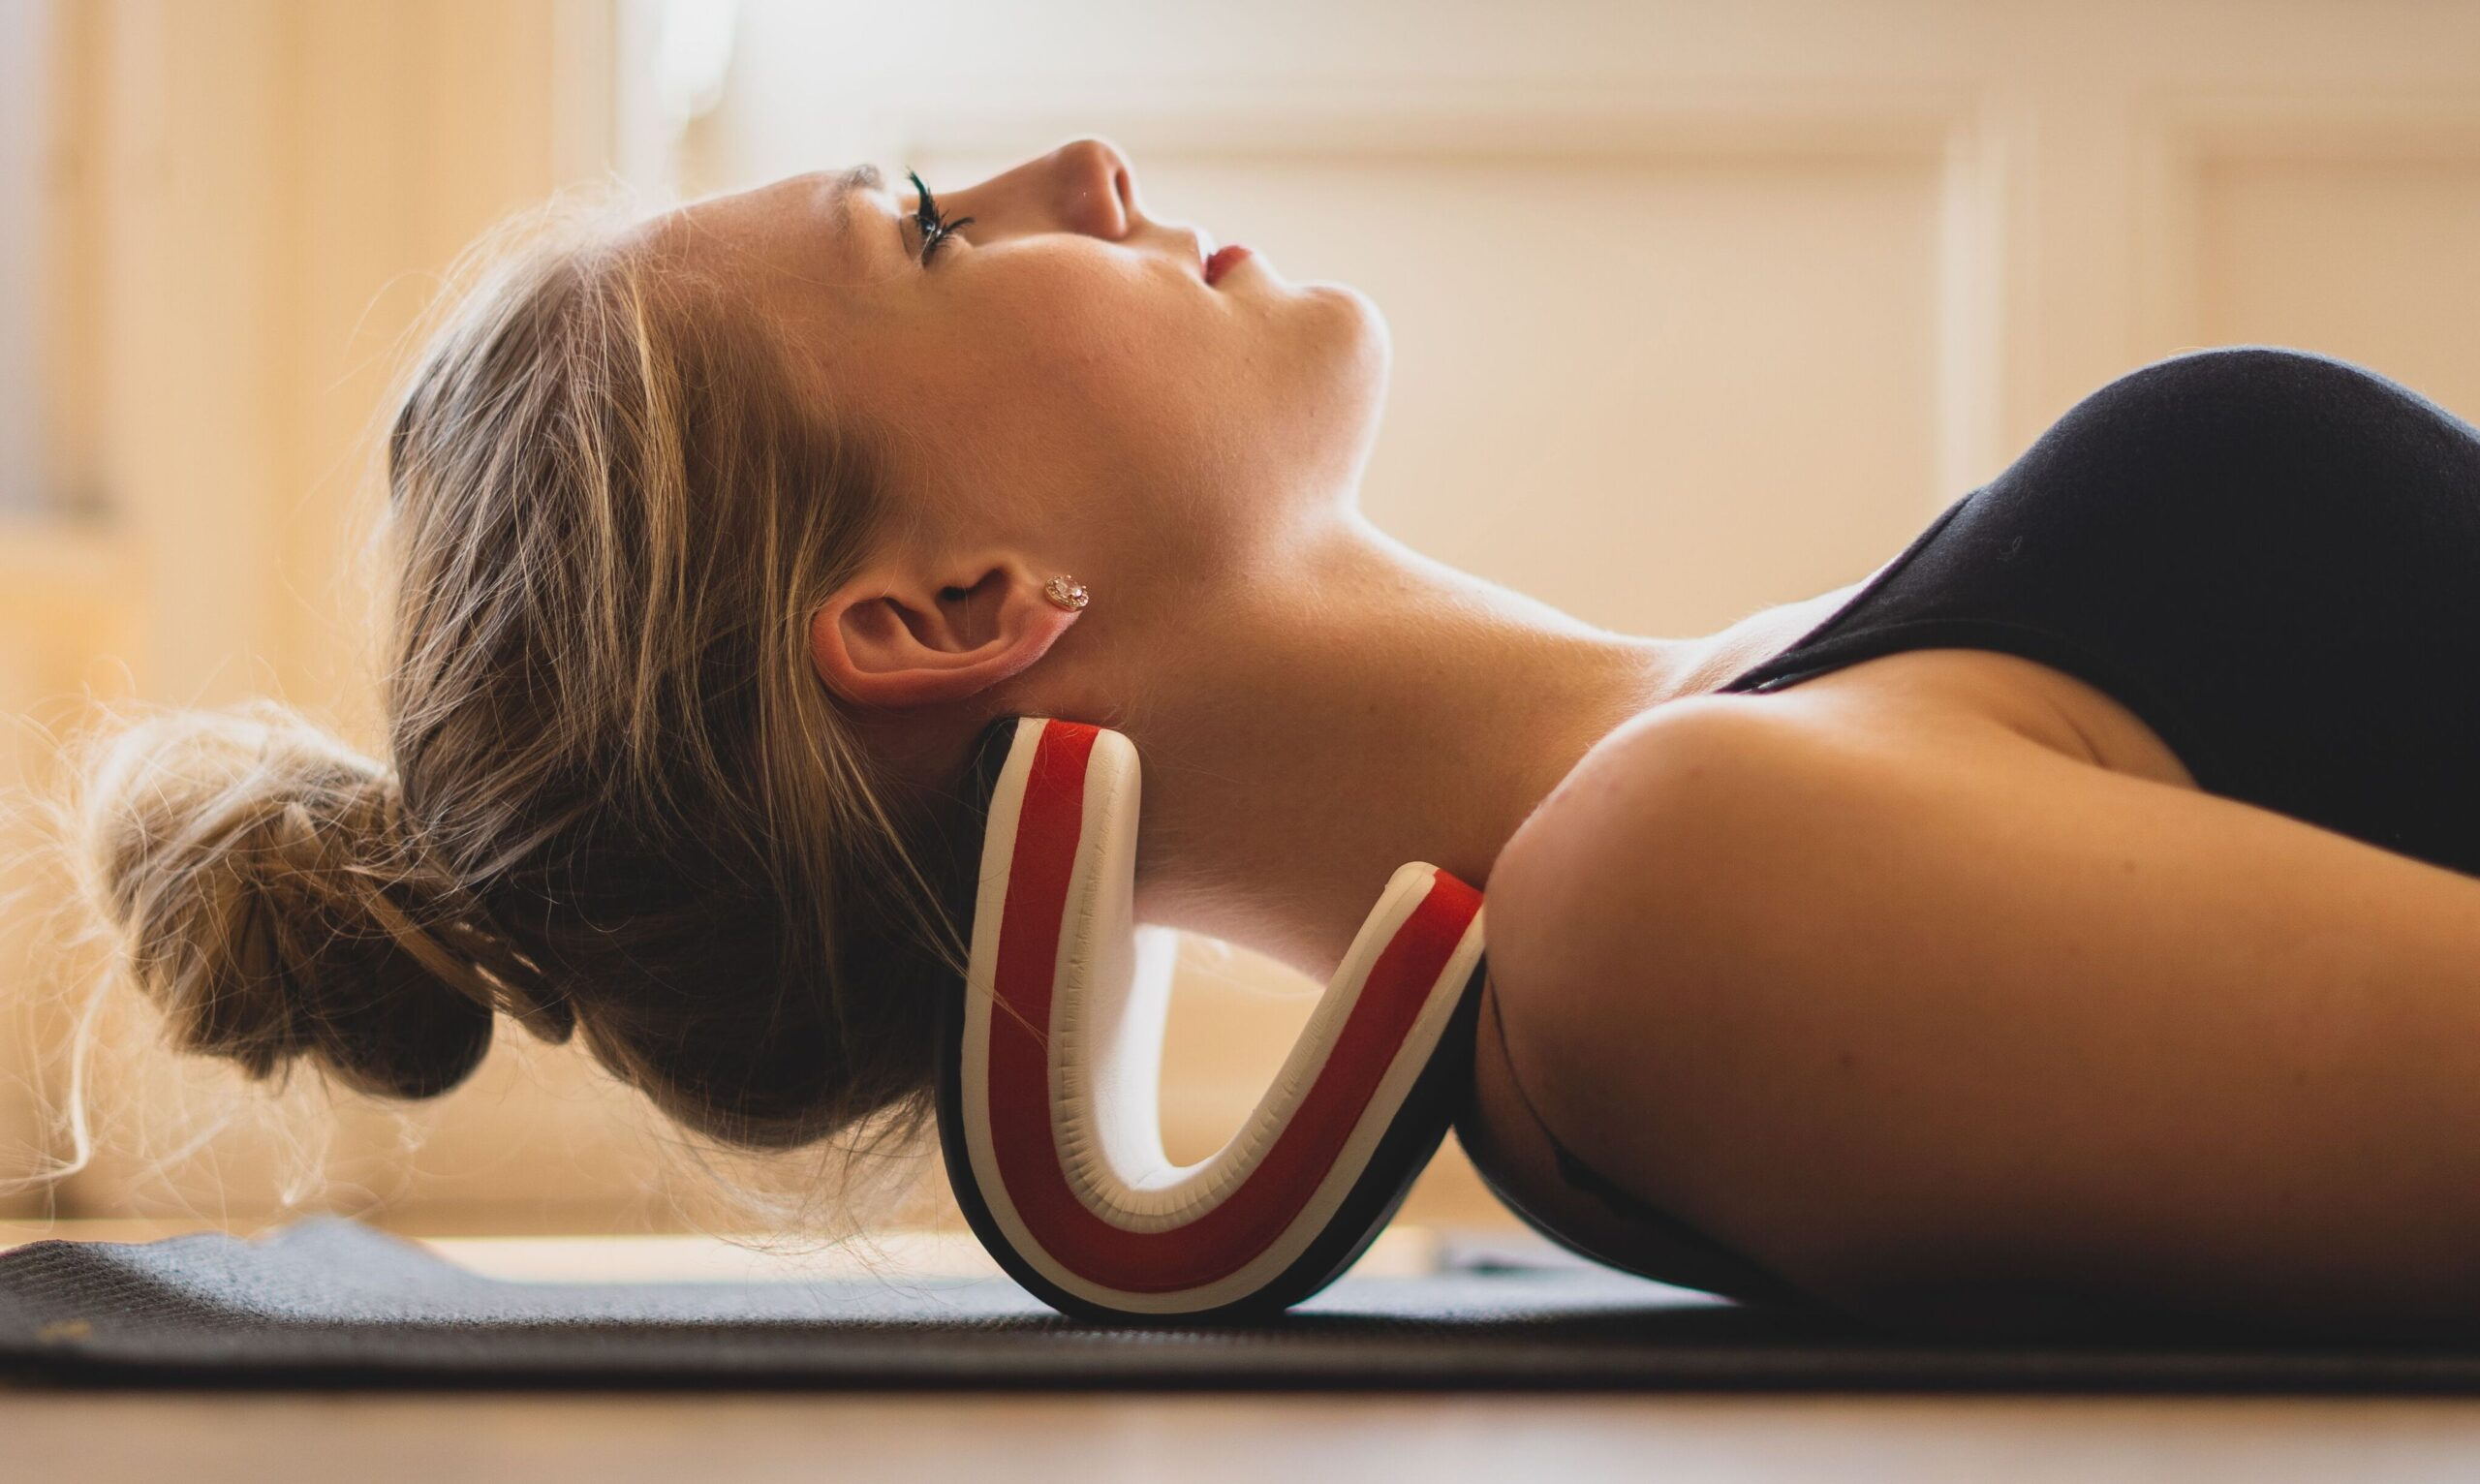 Necksaviour : Does It Work to Treat Neck Pain? Here is Review